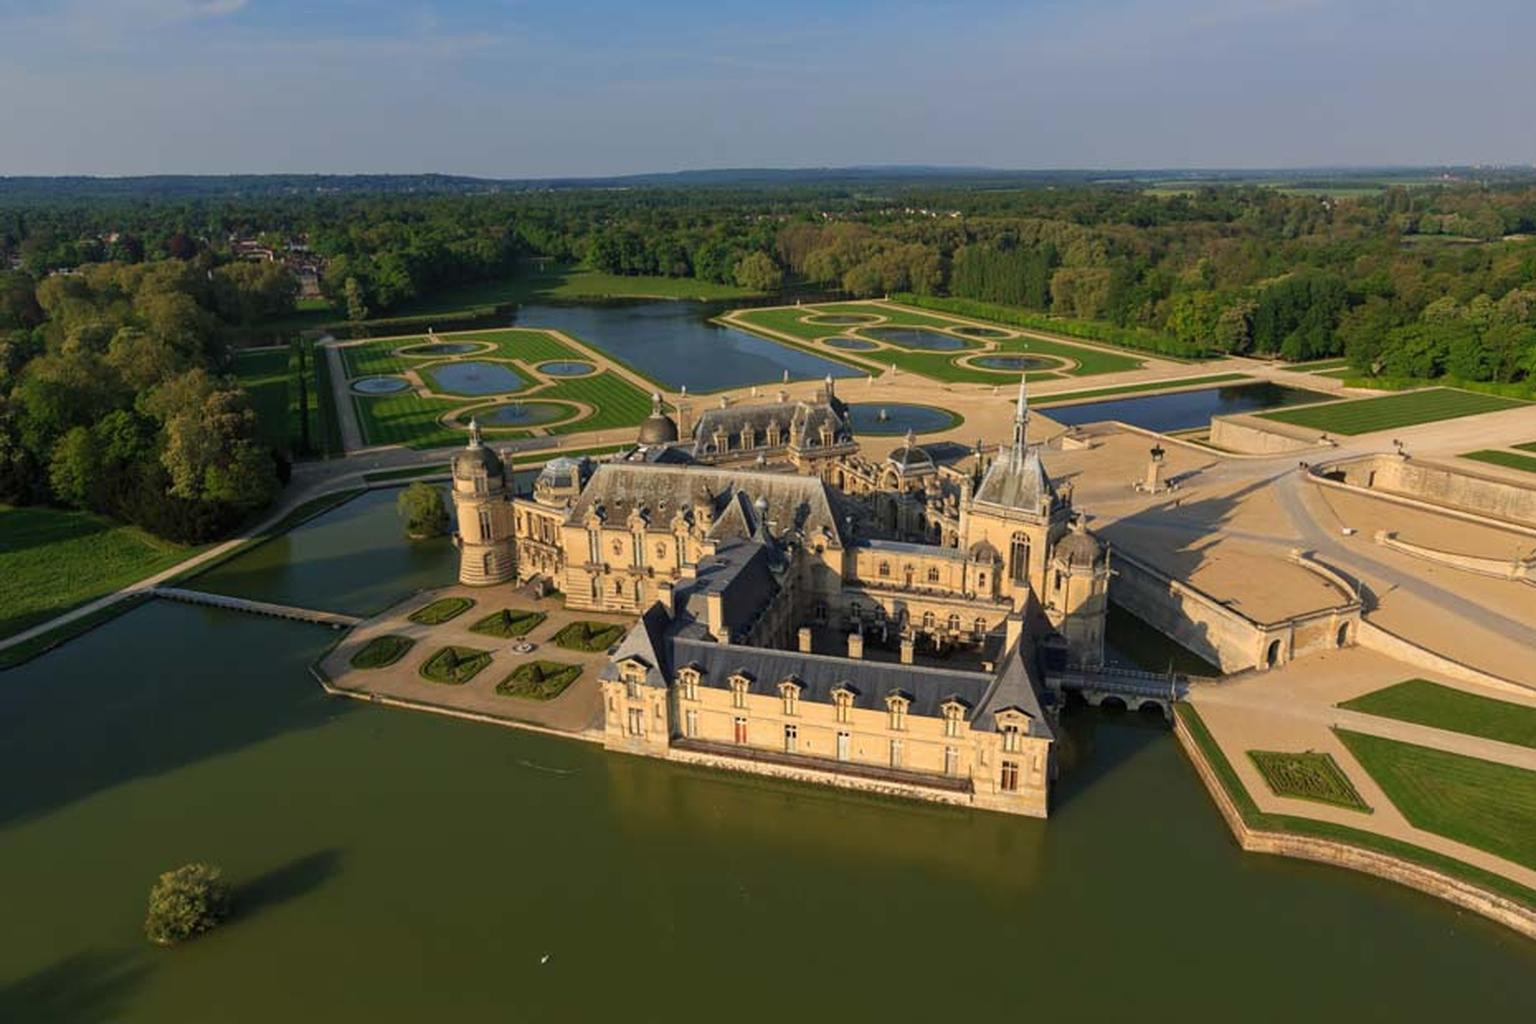 The two-day event Chantilly Art & Elegance celebrated French 'art de vivre' in the glorious grounds of Chantilly. Image by: Jerome Huyvet.